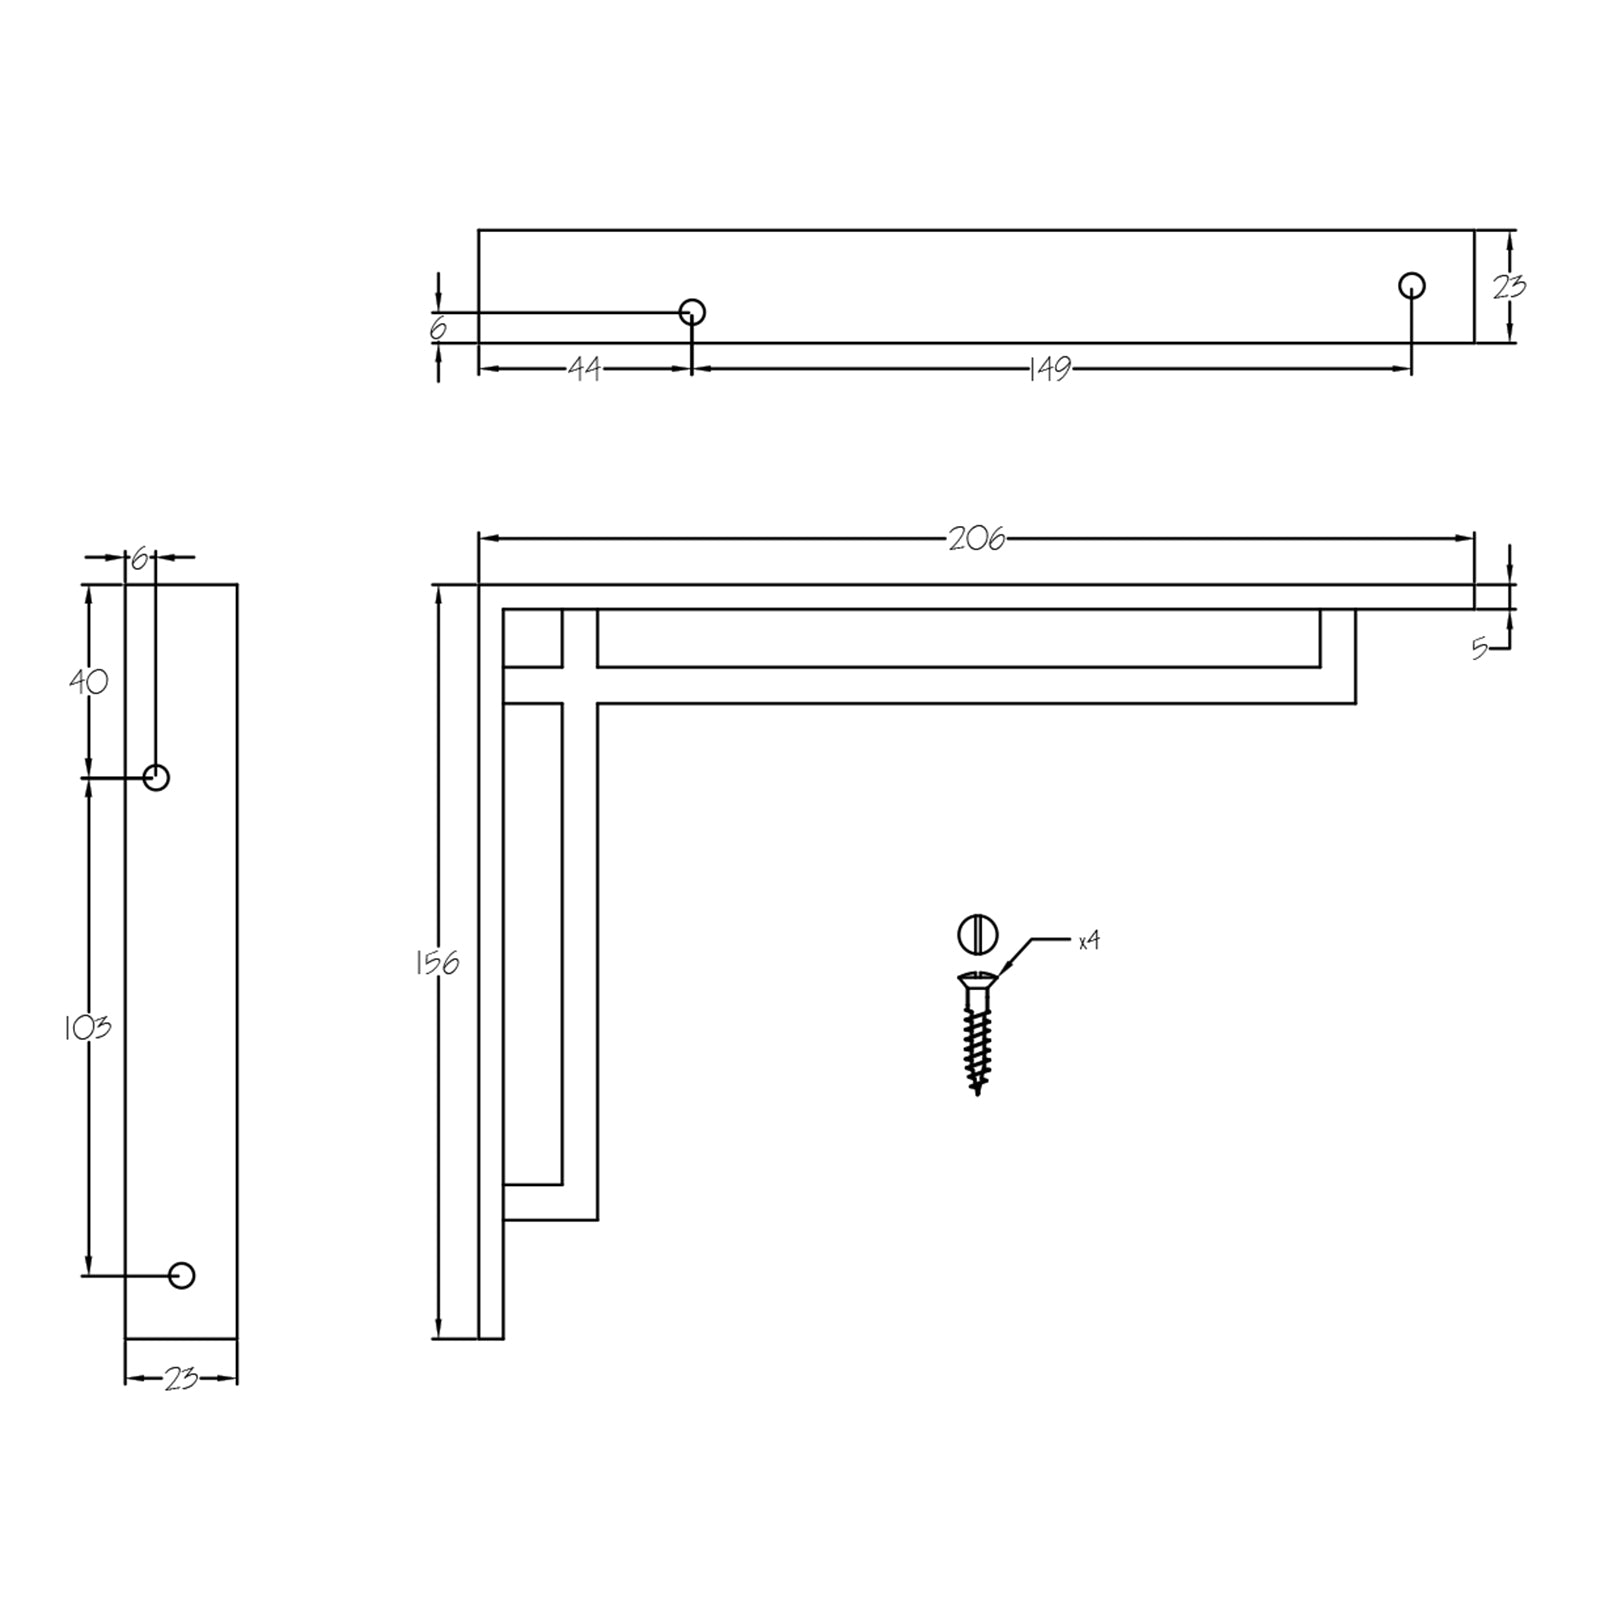 dimension drawing for art deco narrow shelf bracket SHOW